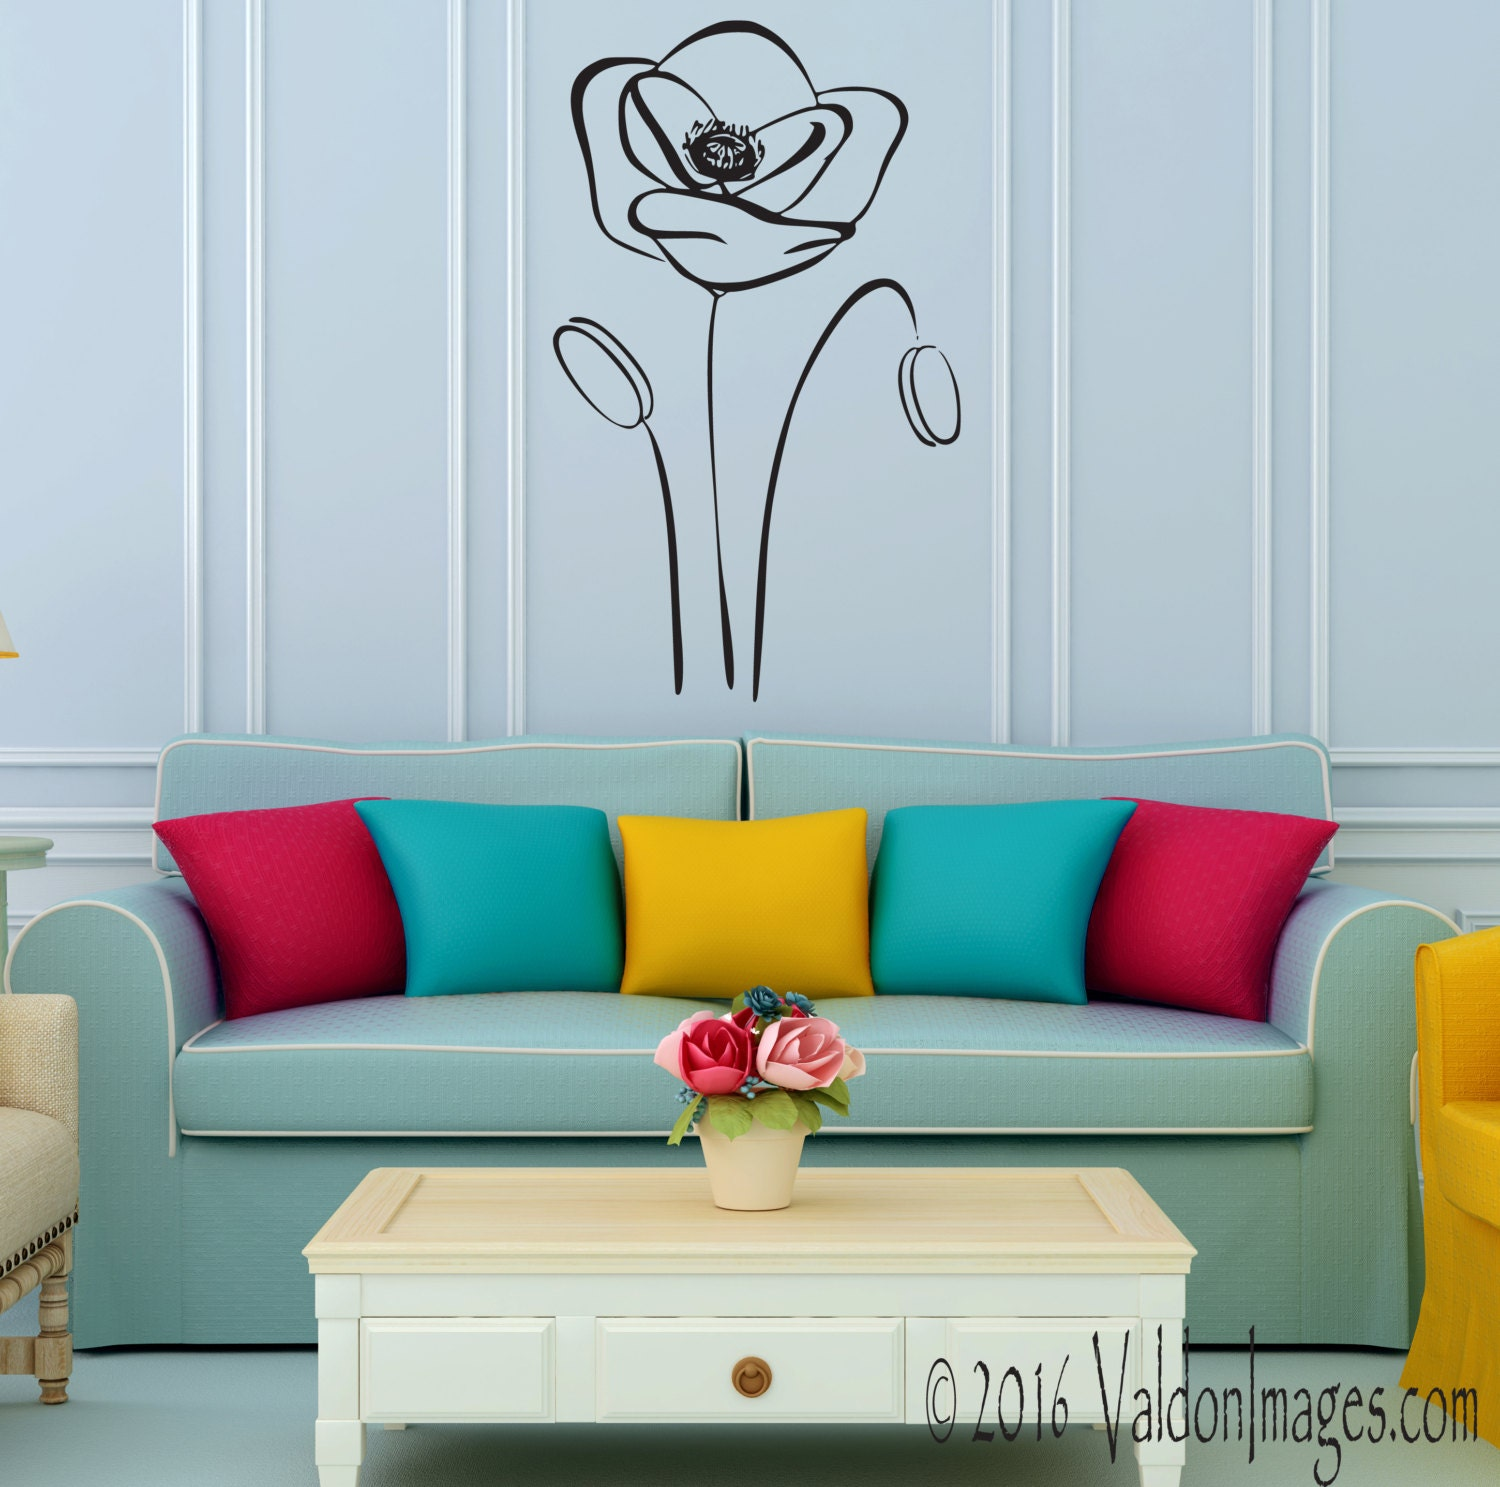 Poppy flower wall decal poppies wall decal flower wall